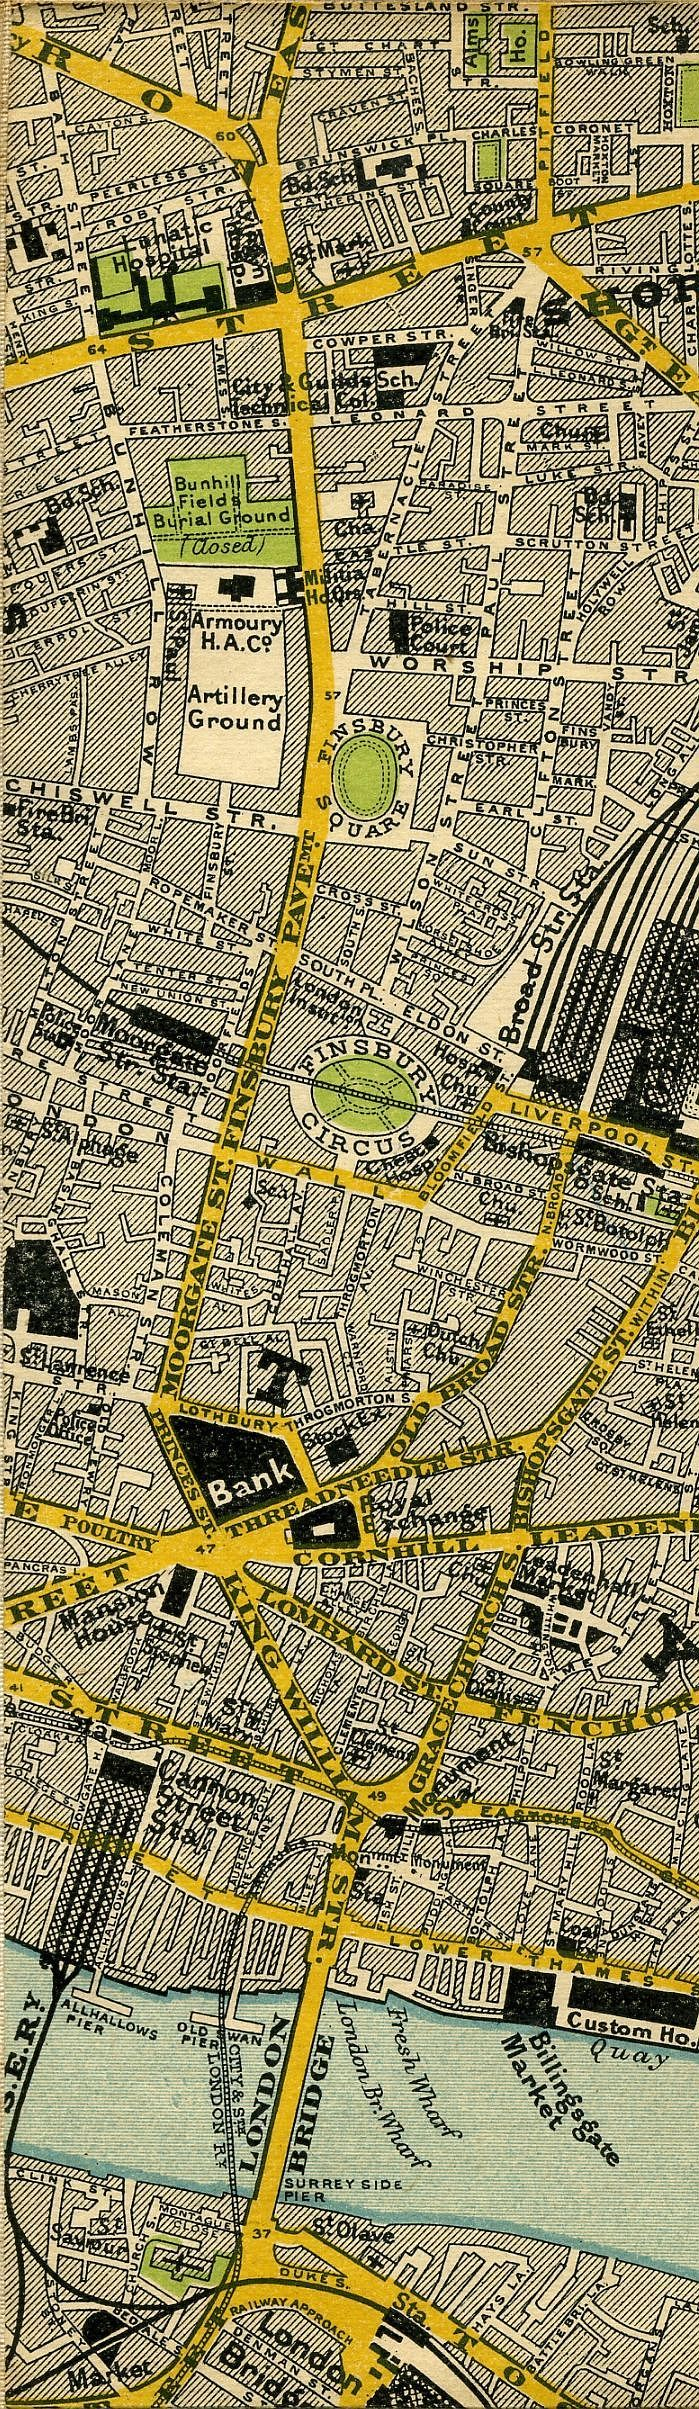 1897 map of central London Shoreditch